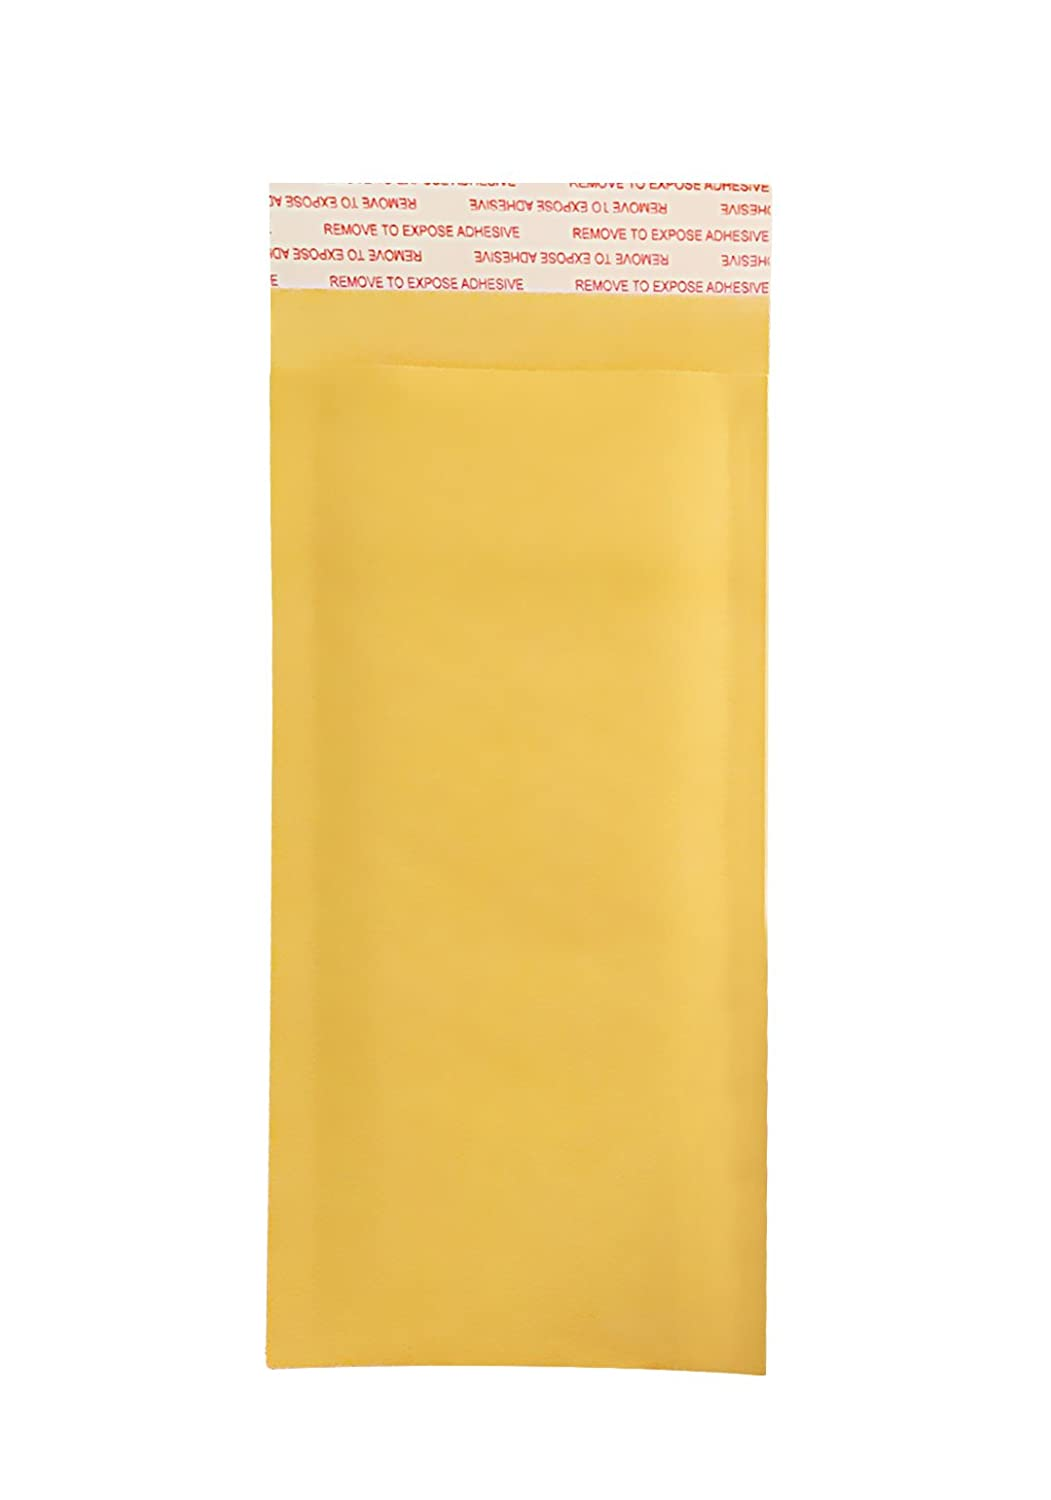 Eco-Friendly Bubble Mailer Shipping Envelopes with Self Adhesive Strip HAI-RAAN 000 Kraft Bubble Mailers 4x8 50 Pack Golden Self-Seal Padded Envelopes